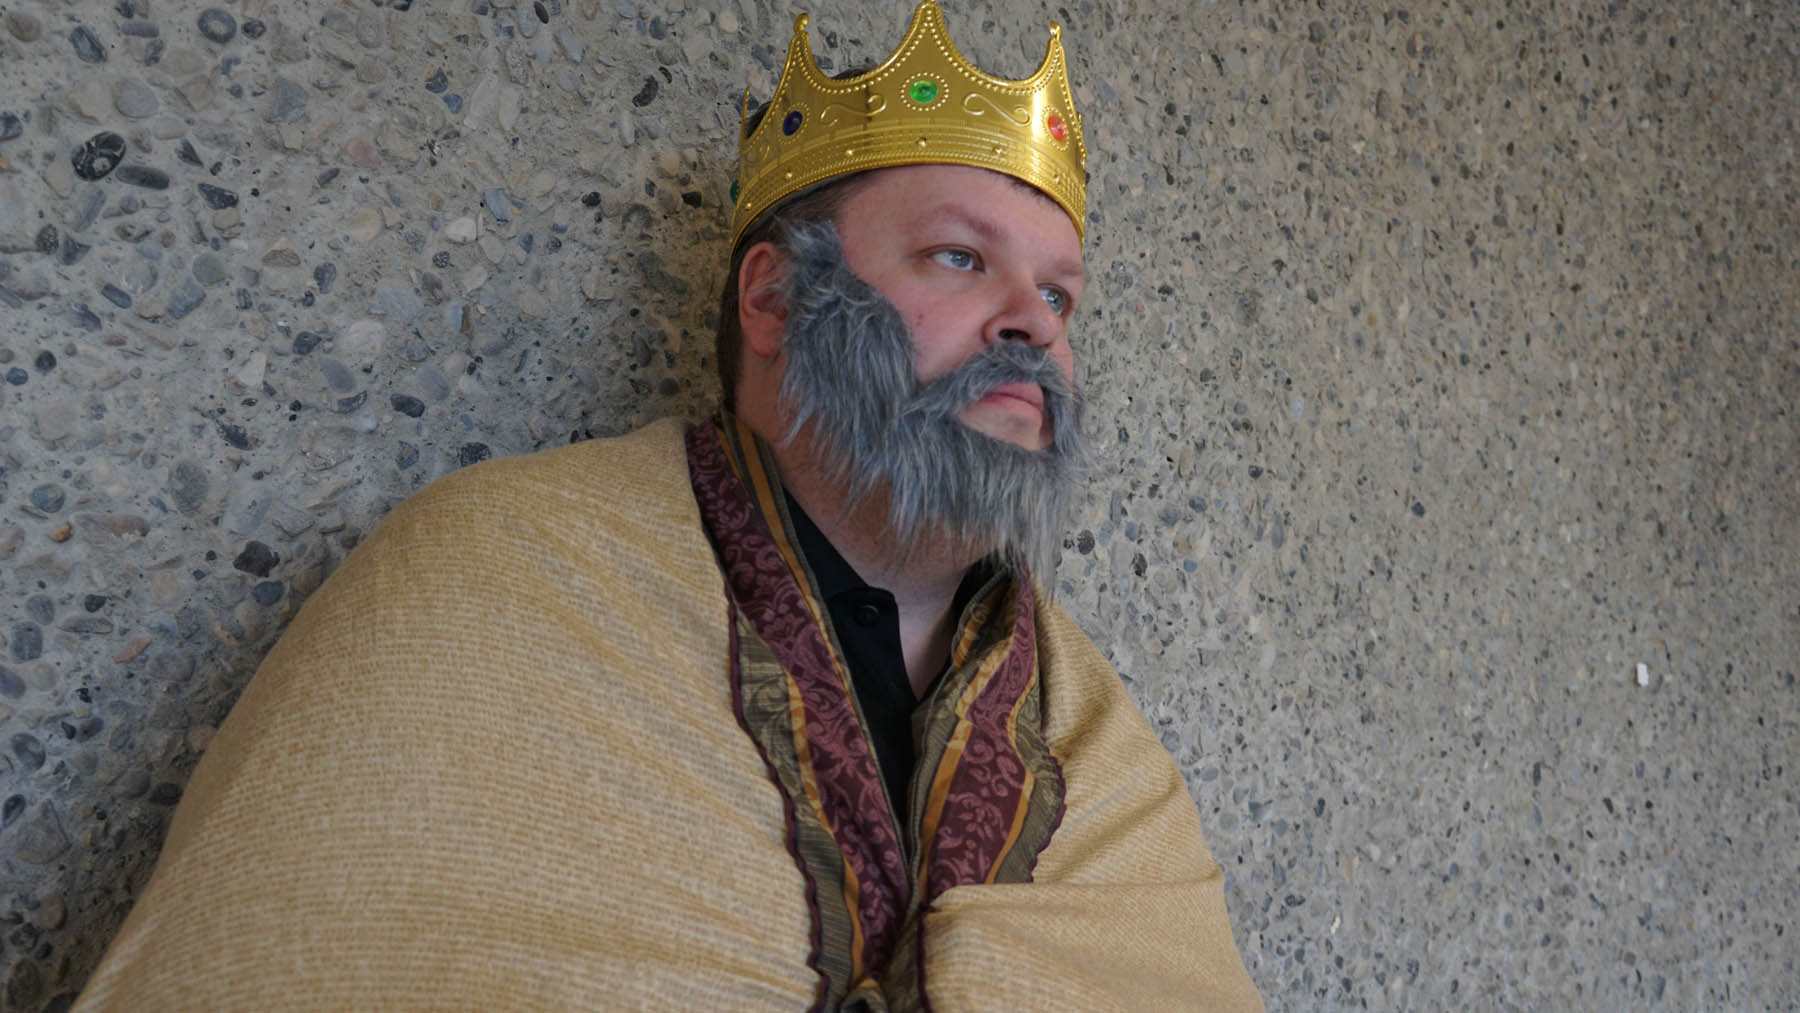 the significance of the sub plot in king lear King lear wants to be flattered due to his excessive pride, while gloucester is fooled due to his excessive fatherly trust the endings are slightly different the subplot ends on a significantly more positive note than the main plot edgar survives to rule england, while in the main plot cordelia and lear die.